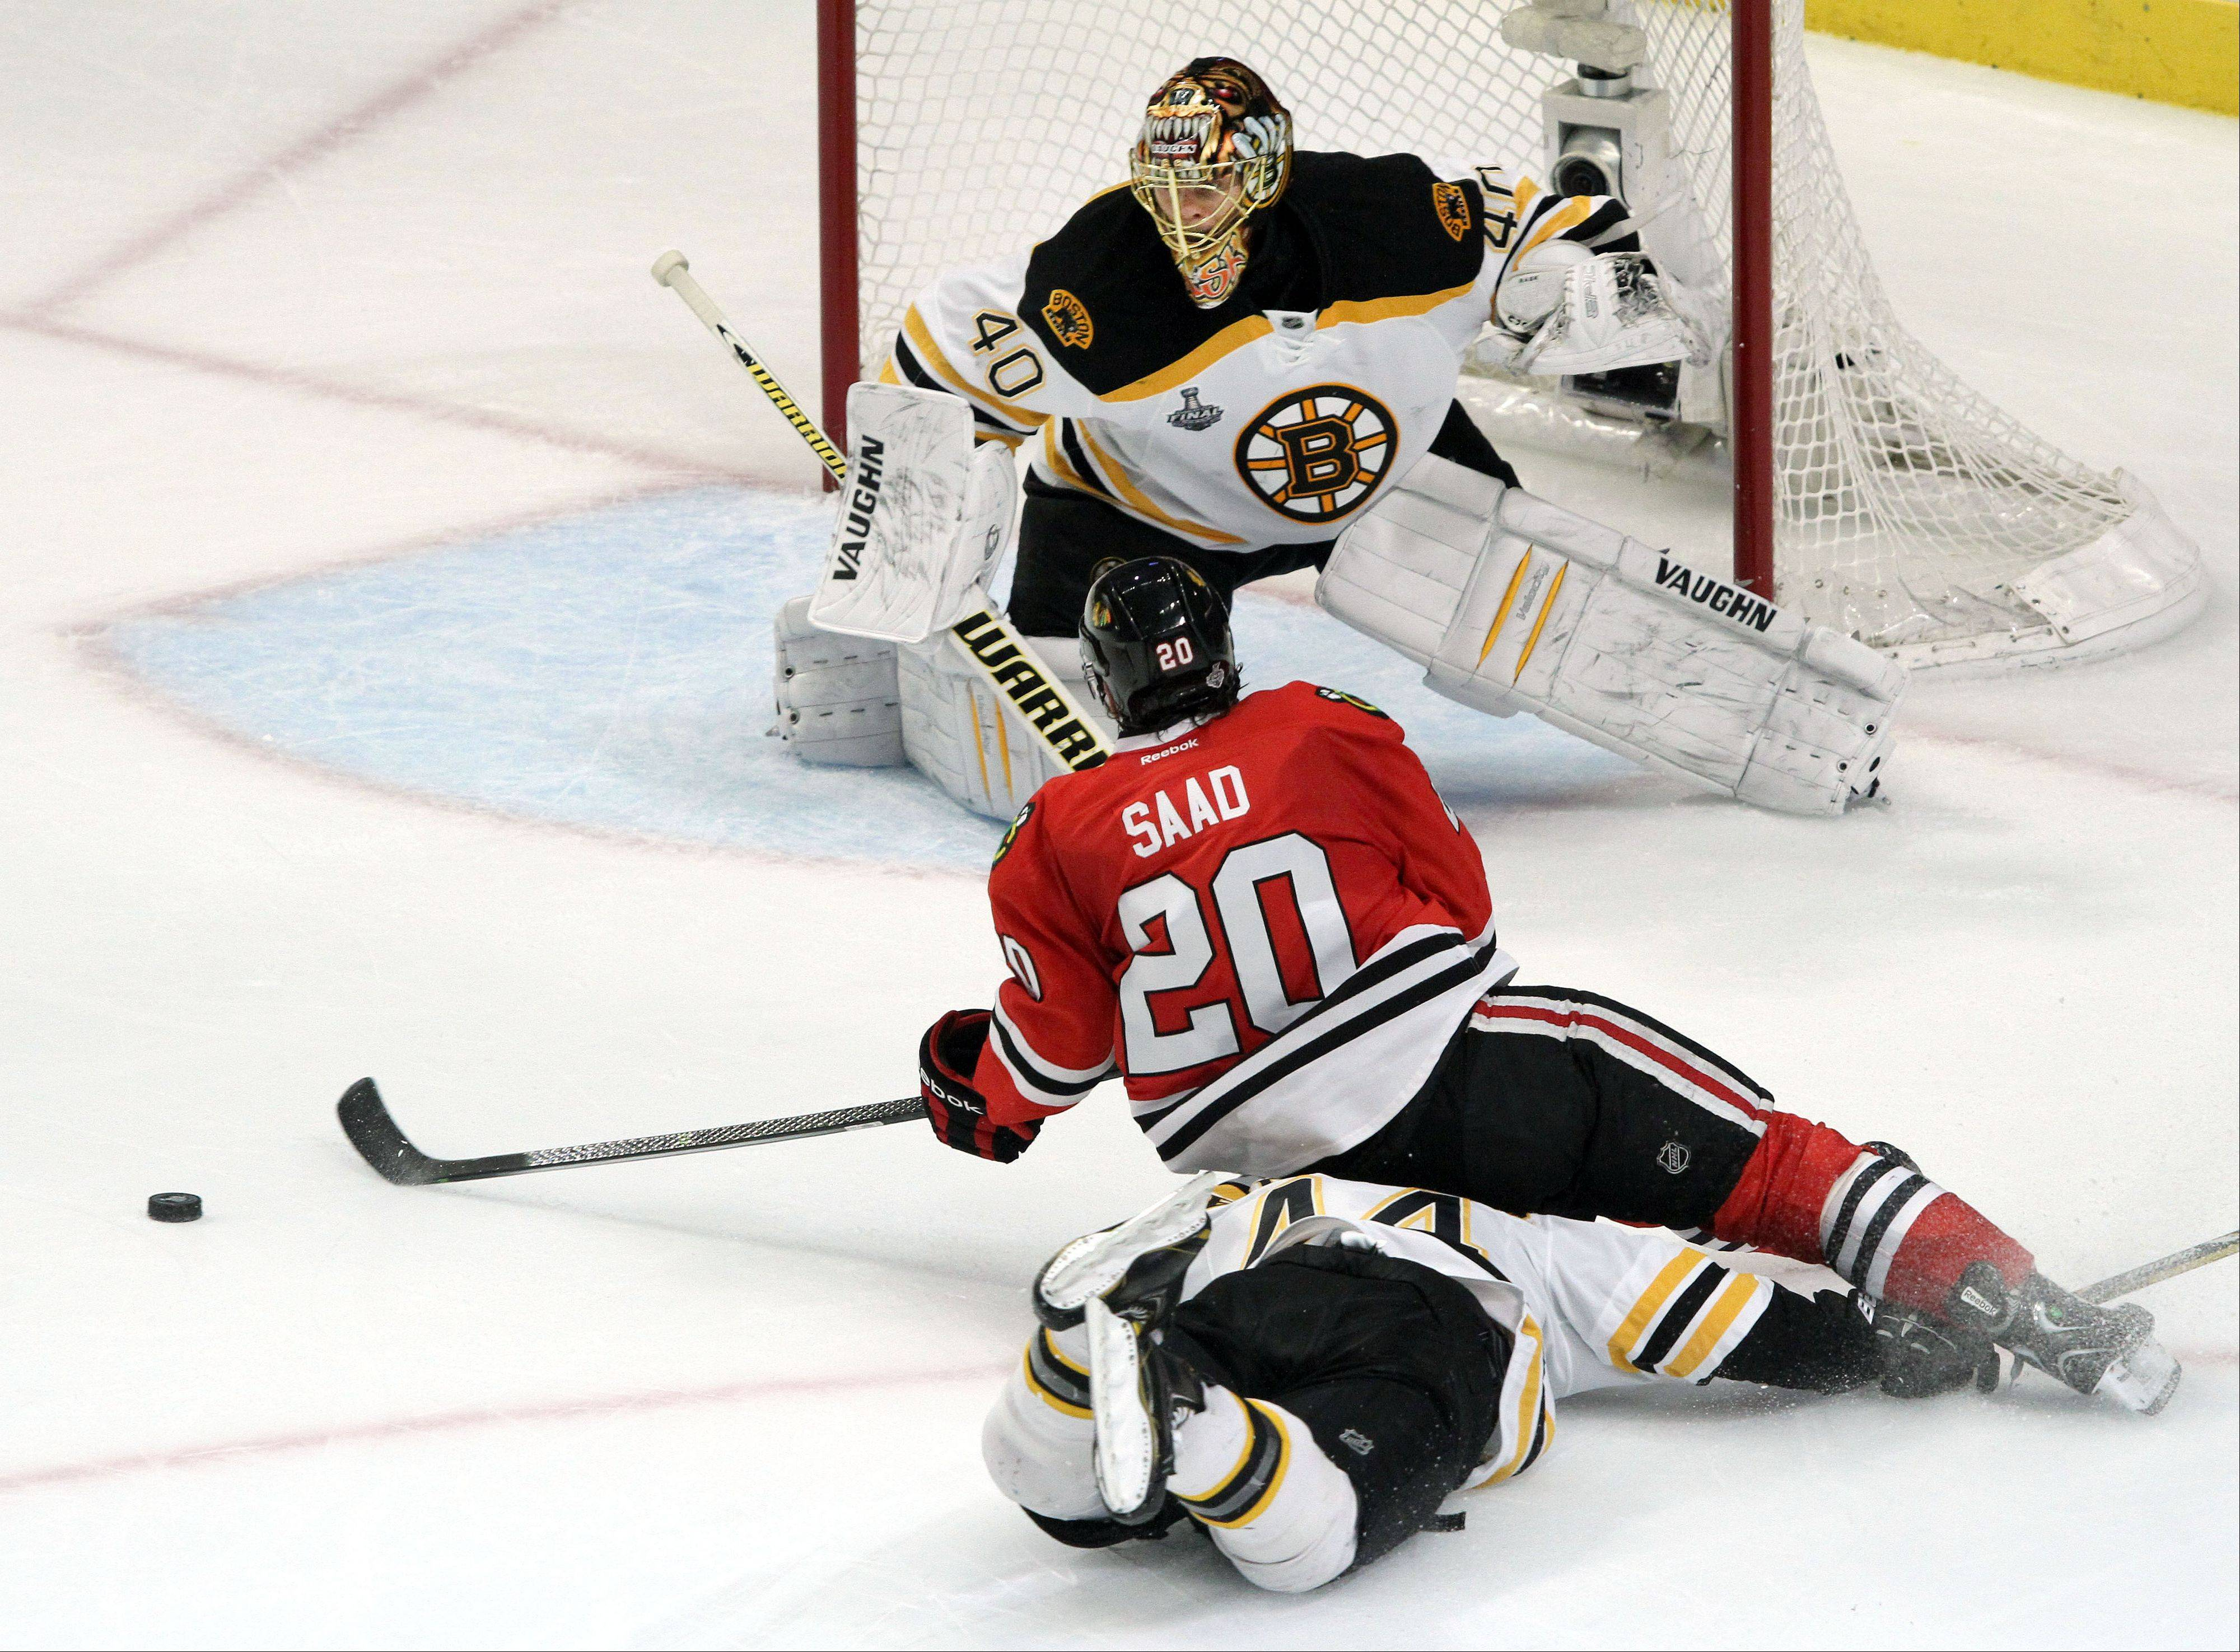 Blackhawks left wing Brandon Saad gets tripped by Bruins defenseman Dennis Seidenberg during Game 2 of the Stanley Cup Final against the Bruins at the United Center on Saturday.